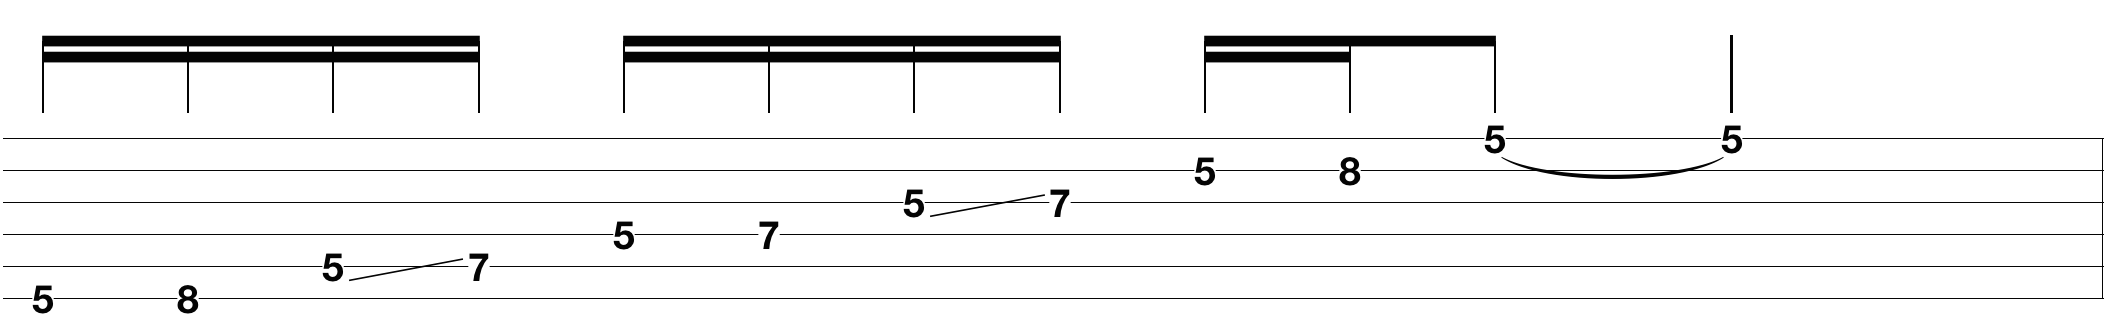 slide-guitar-tips_2.png